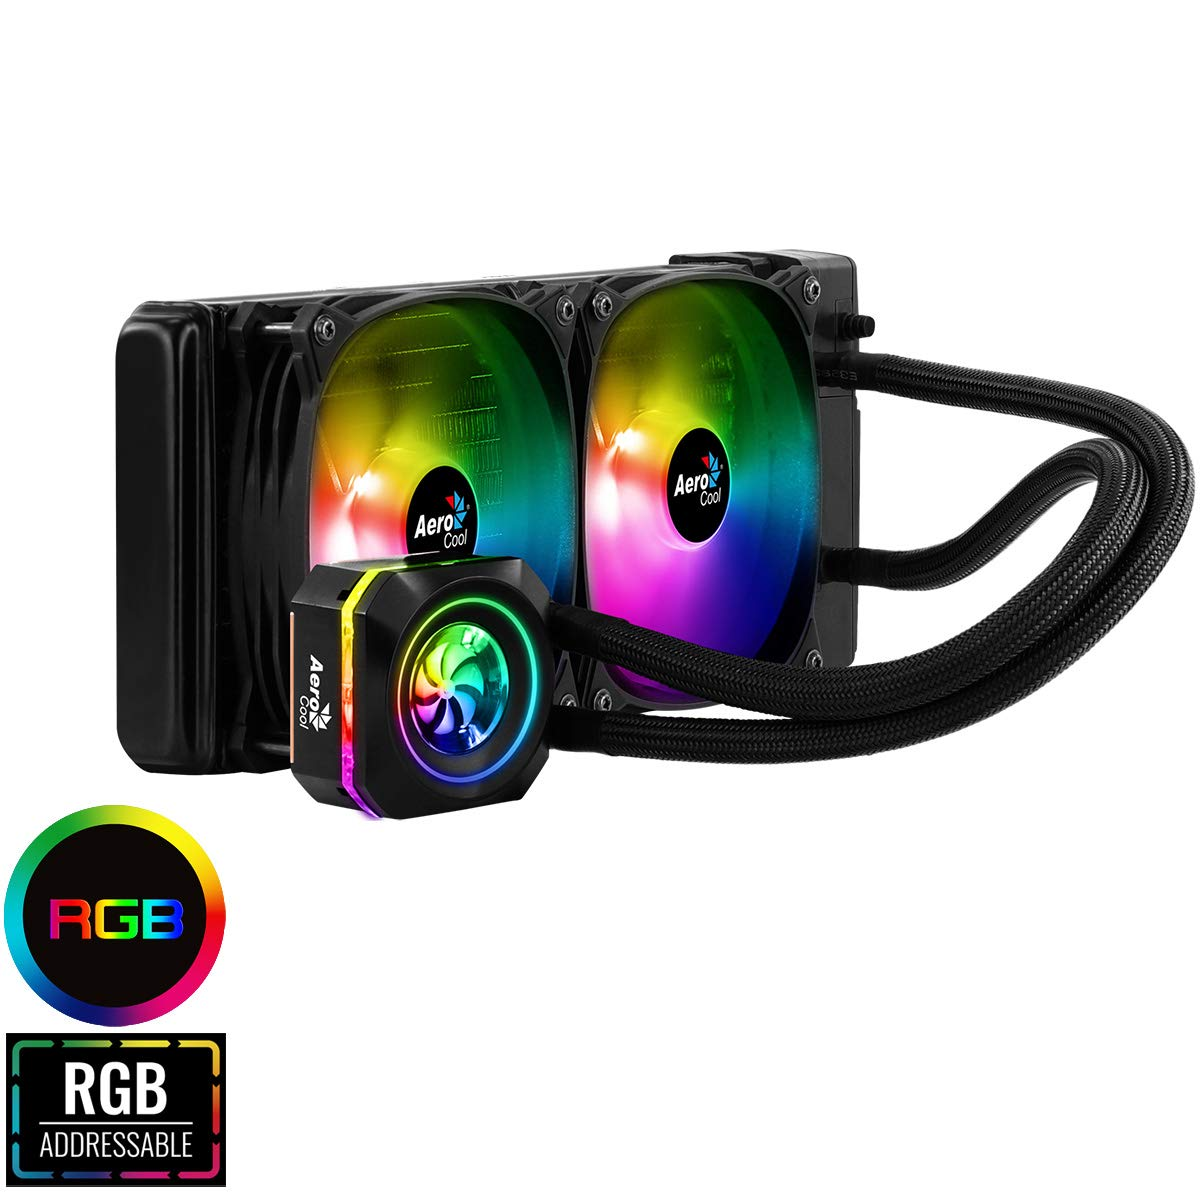 Aerocool Pulse 240mm ARGB AIO Water Cooling System, AMD & Intel Compatible, Two Addressable RGB Fans, Compatible With Asus Aura Sync, MSI Mystic Light Sync, Gigabyte RGB Fusion and ASRock RGB Sync